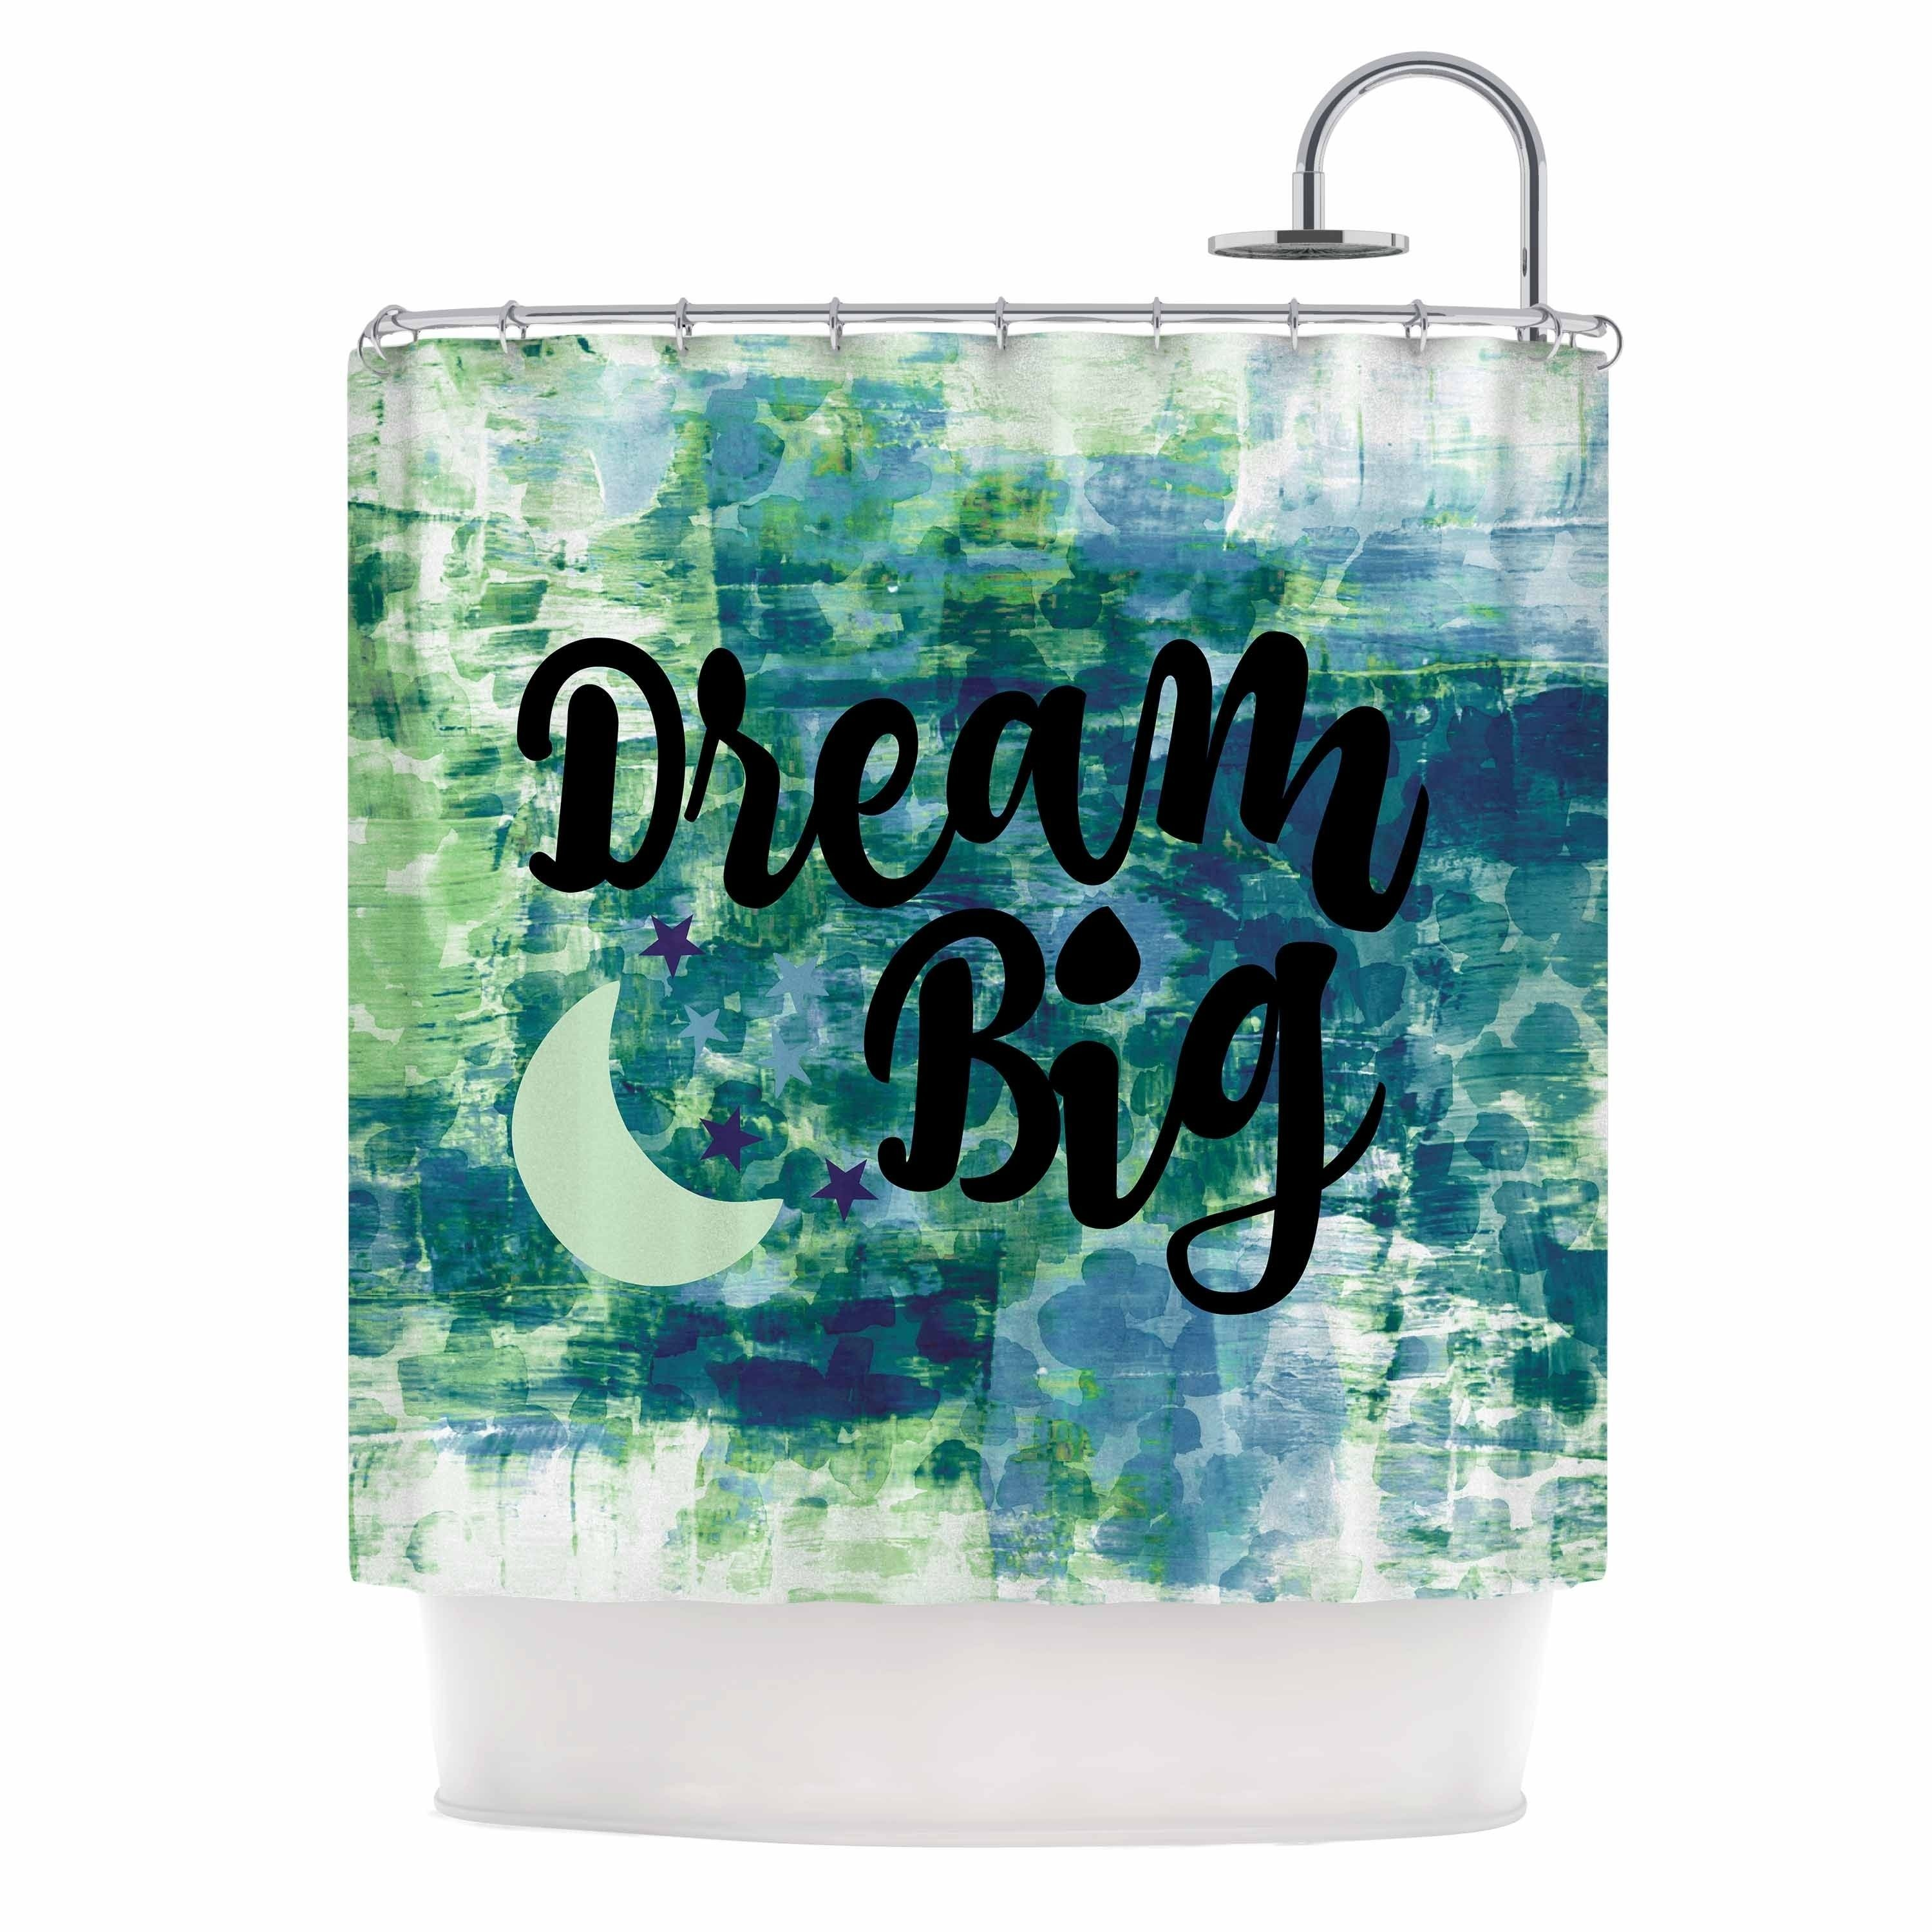 Ebi Emporium Dream Big Teal Green Teal Green Typography Abstract Painting Digital Shower Curtain Blue Kess Inhouse Digital Showers Teal Kitchen Curtains Teal Green